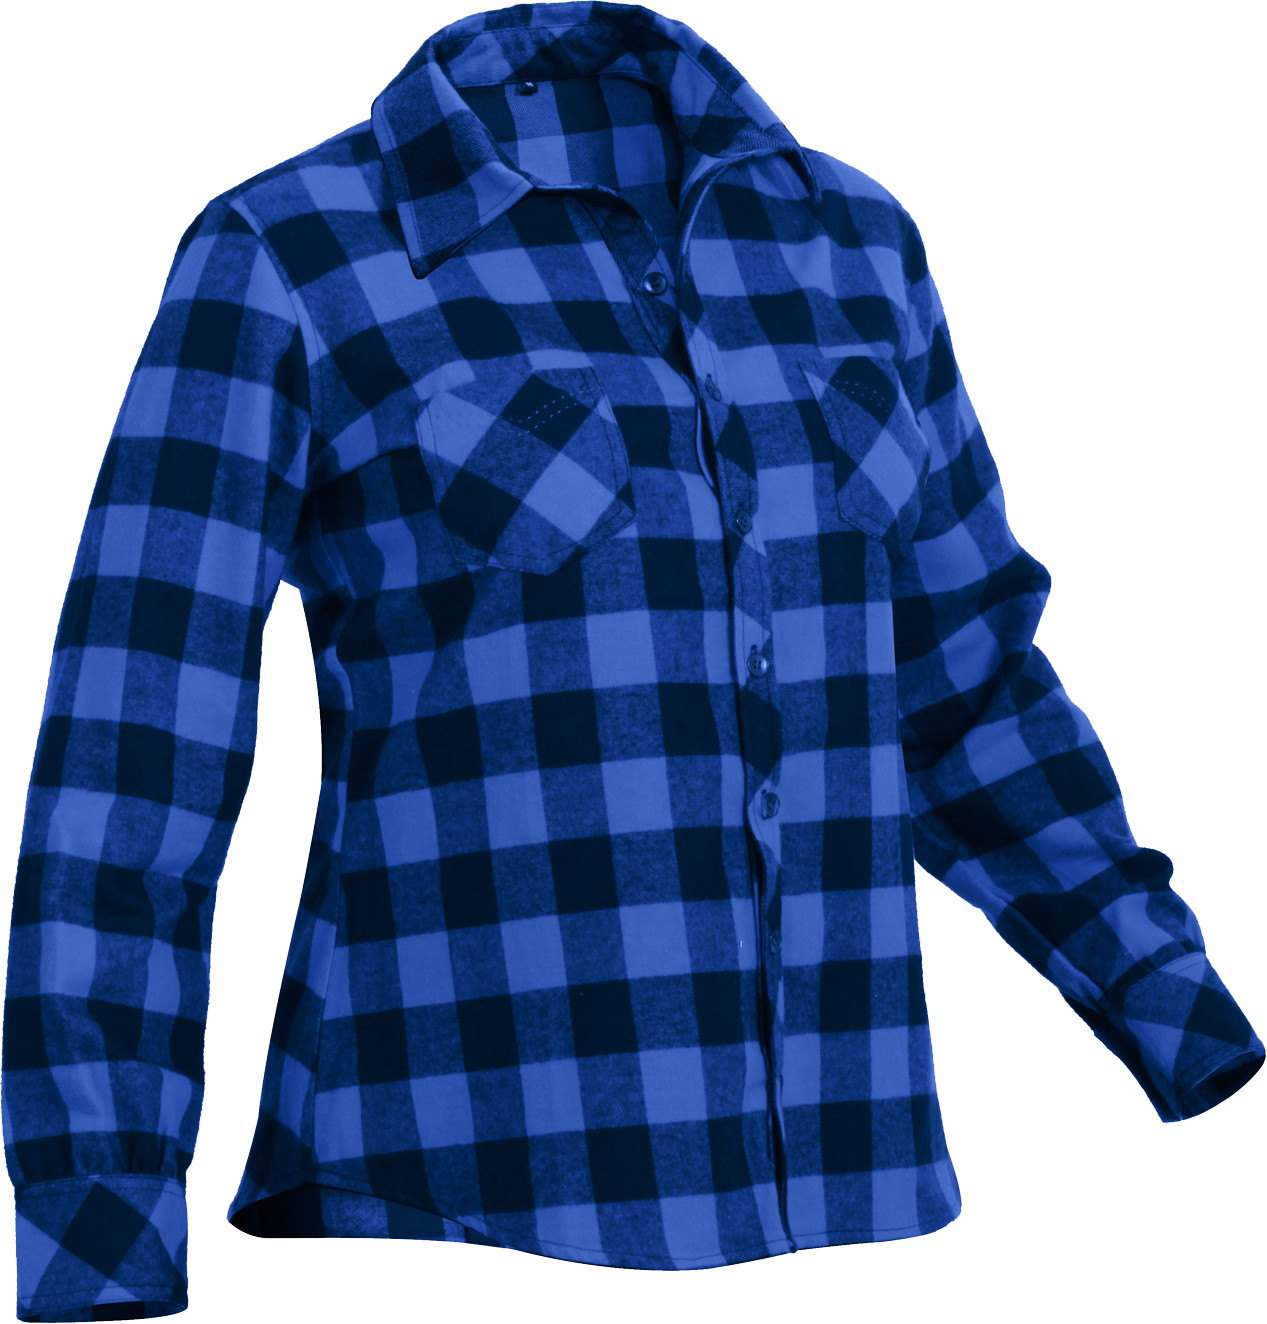 Women 39 s blue plaid tapered cut button down flannel shirt for Plaid button down shirts for women